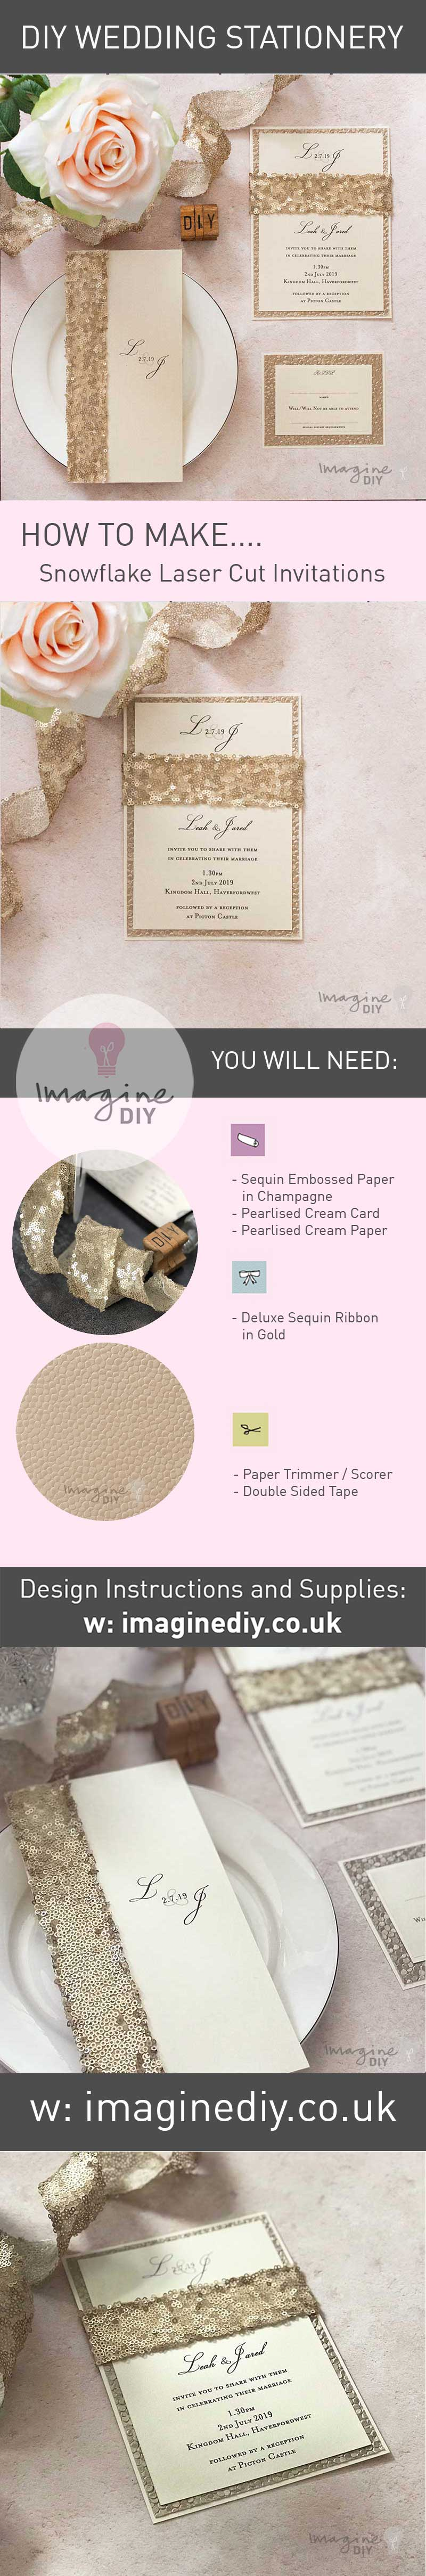 how to make luxury DIY wedding stationery. Gold sequin wedding invitations to make yourself. How to make your own wedding stationery. DIY wedding ideas.